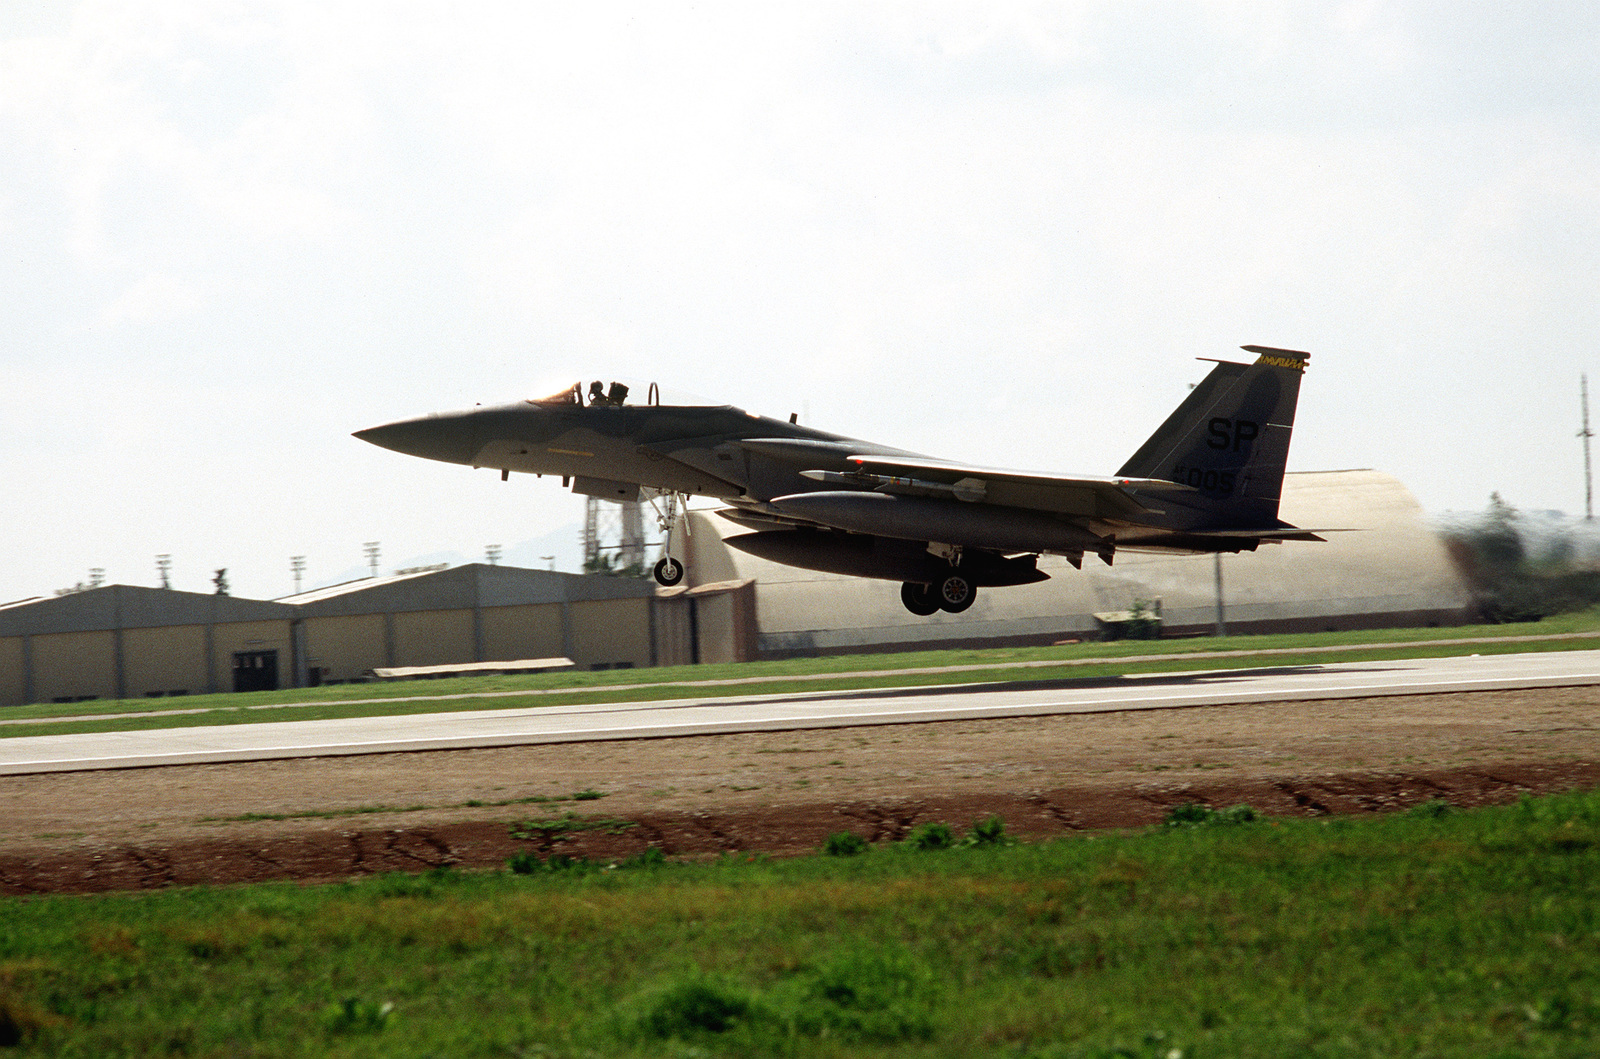 A US Air Force F-15 Eagle takes off for a mission over Iraq in support of the operation. This operation is a security mission to enforce the United Nations no-fly zone north of the 36 degree parallel from Iraqi air and ground incursion. A four nation coalition of US, Turkey, Great Britain and France has been actively protecting and supplying Kurdish refugees since Desert Storm in 1991.(Exact date unknown)